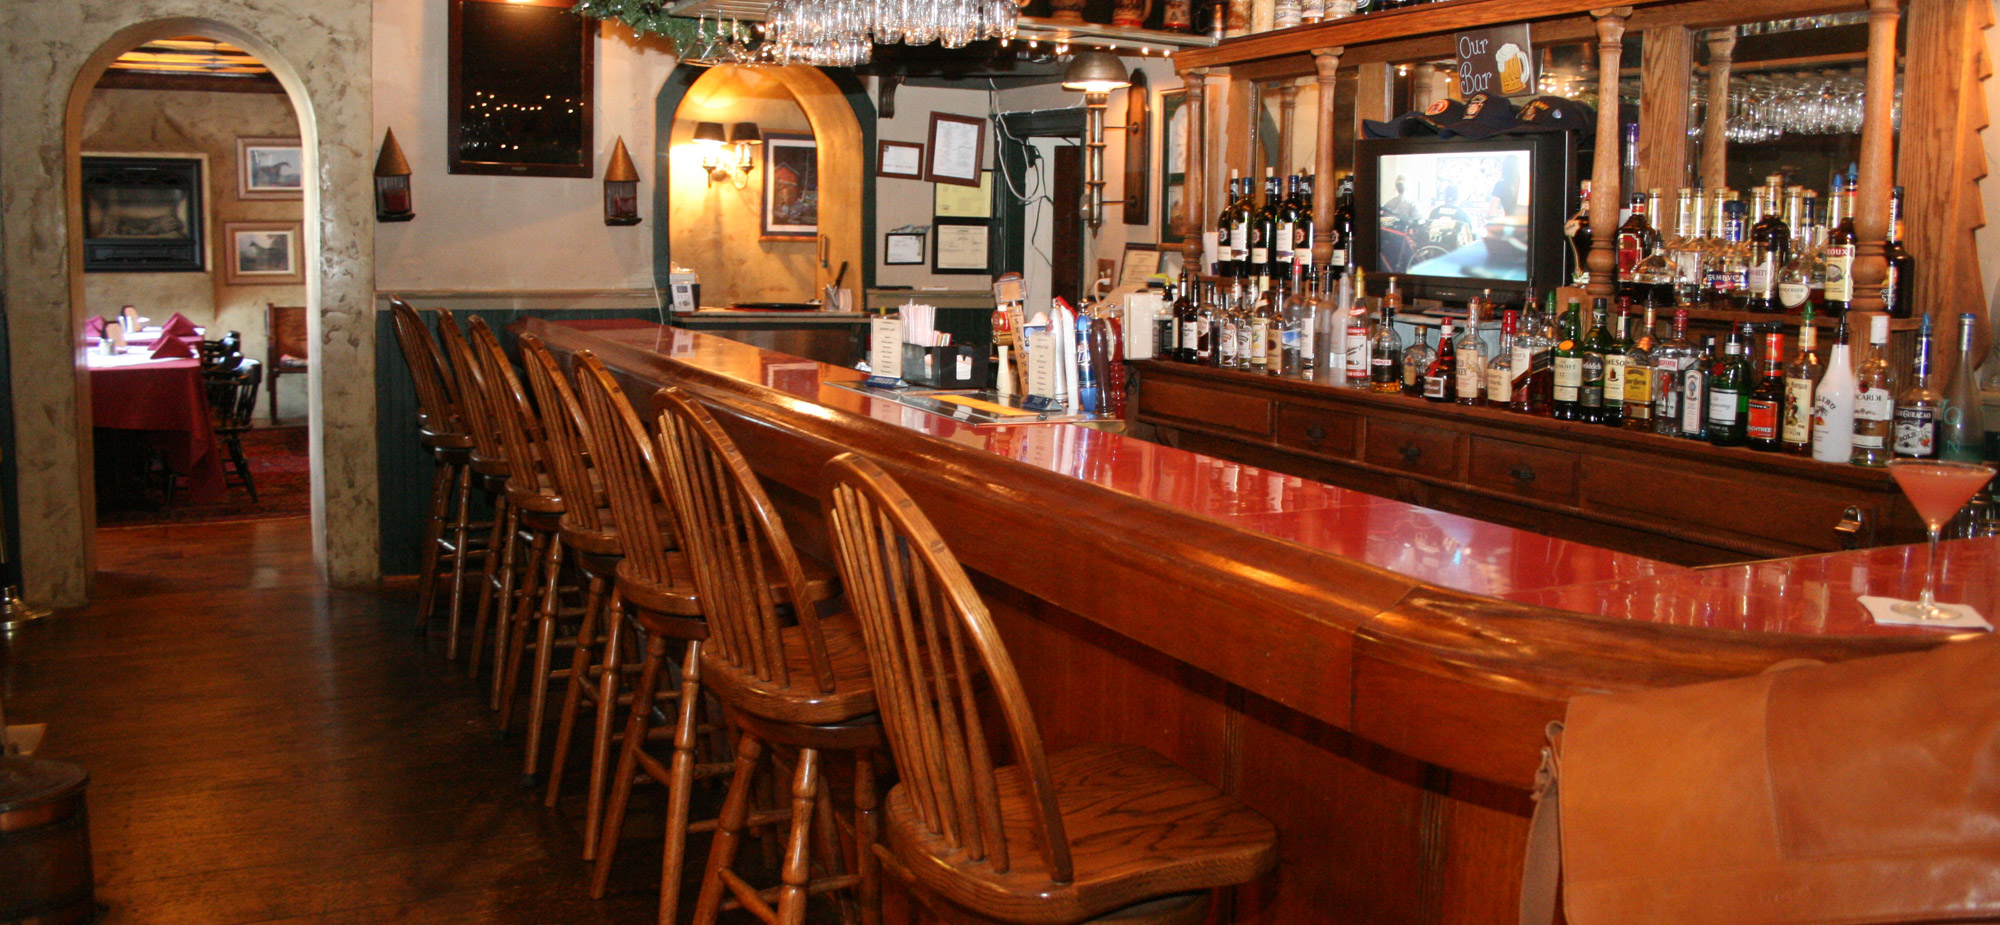 The bar at the Springtown Inn